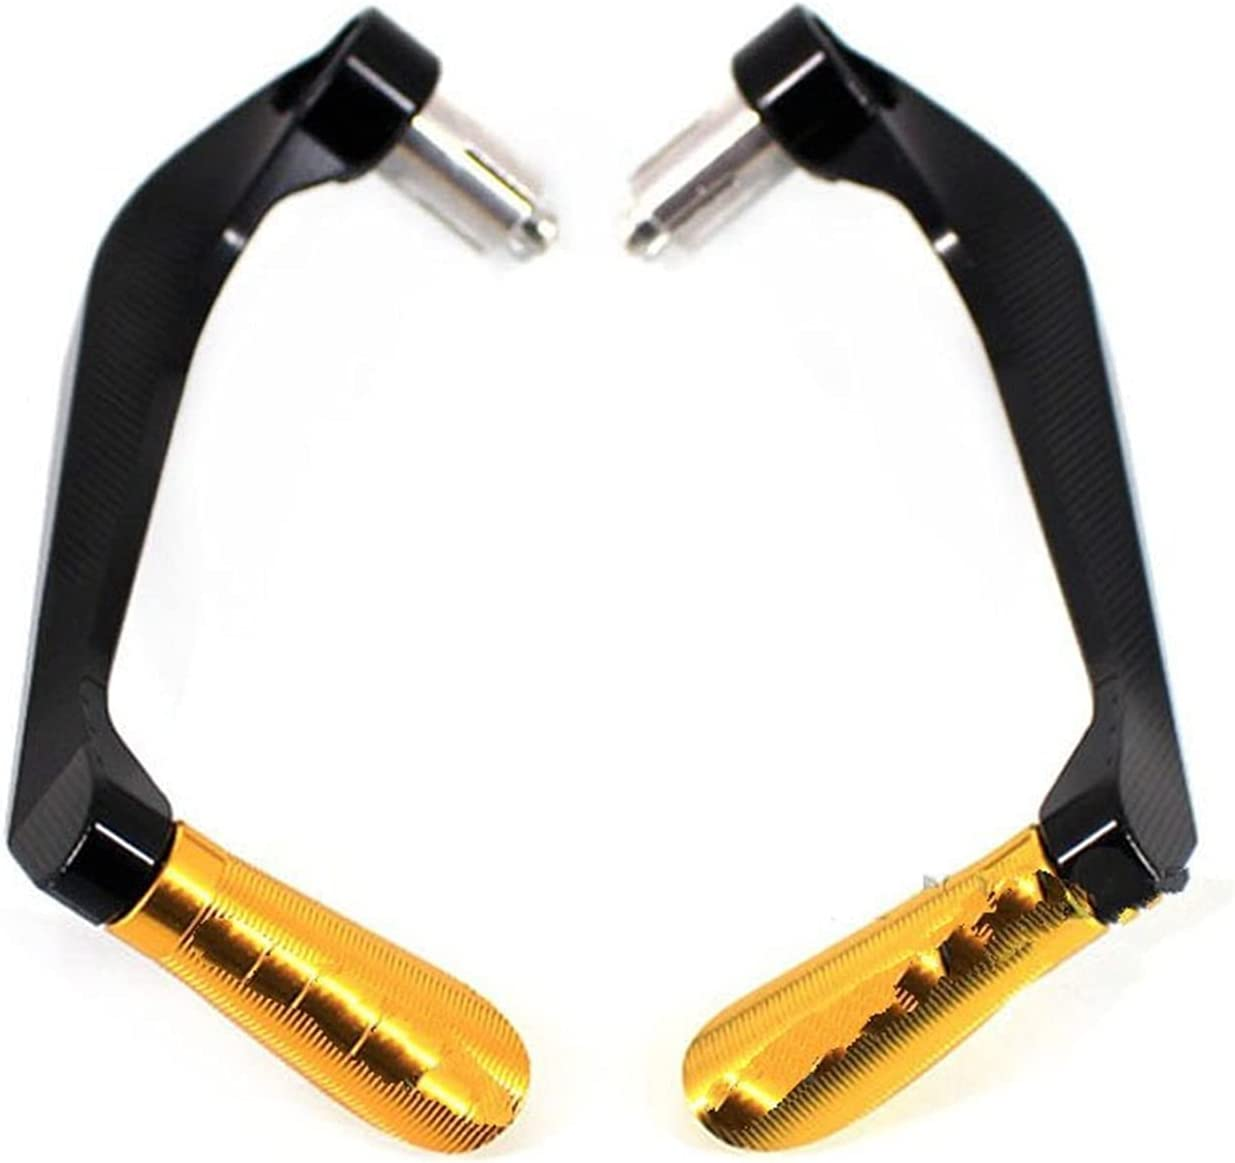 Speeding Motorcycle Brake Max 49% OFF Lever Protector K-AWASAKI At the price of surprise for NINJ-A6